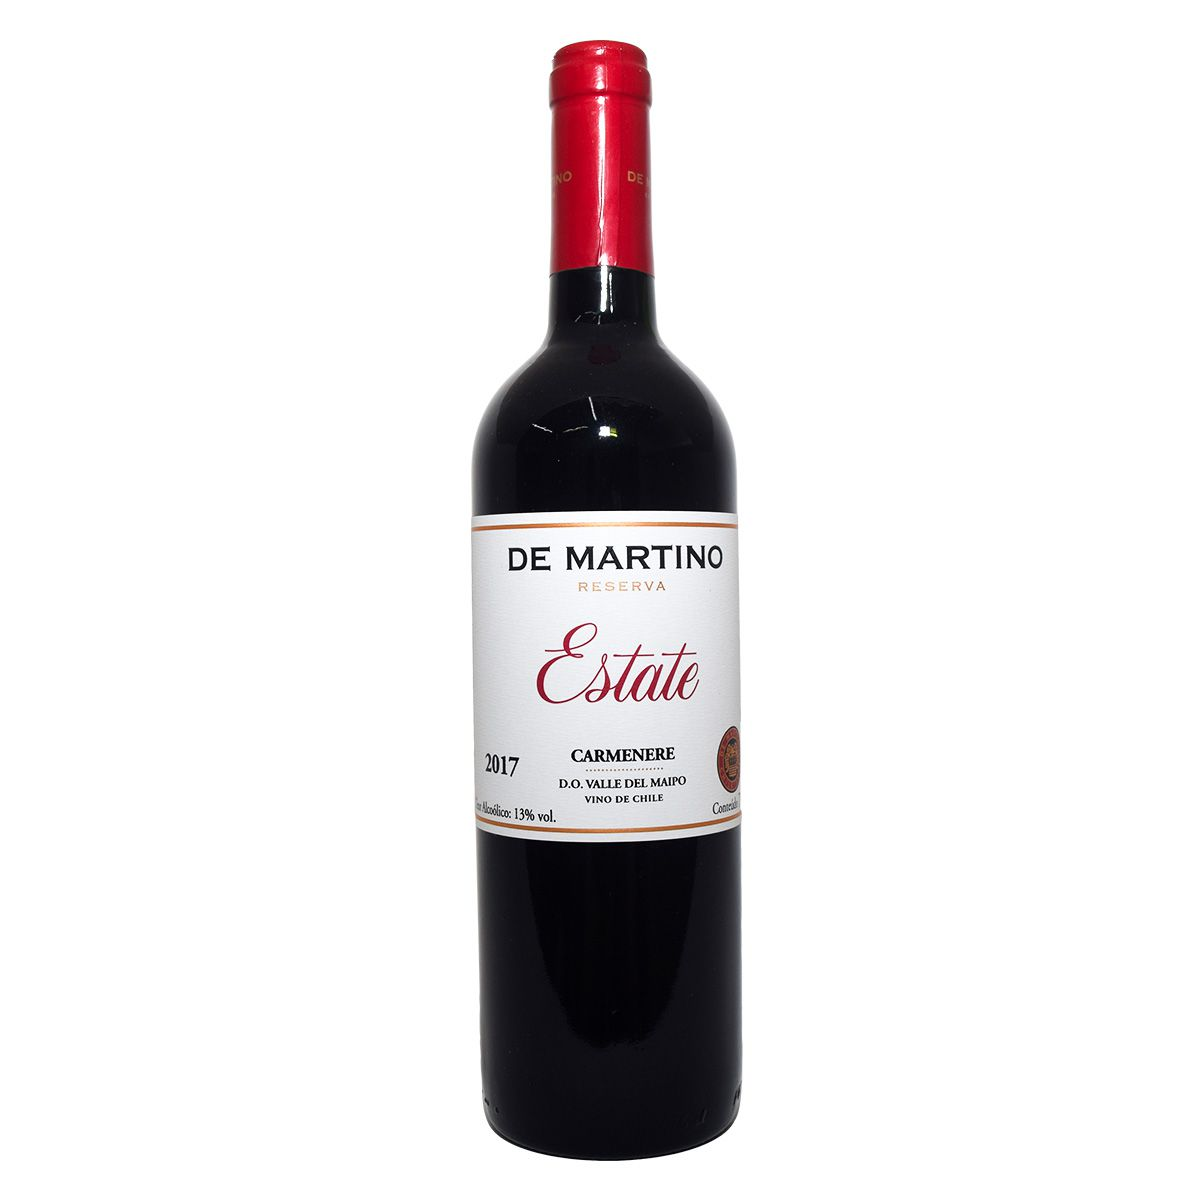 De Martino Carmenere Estate Reserva